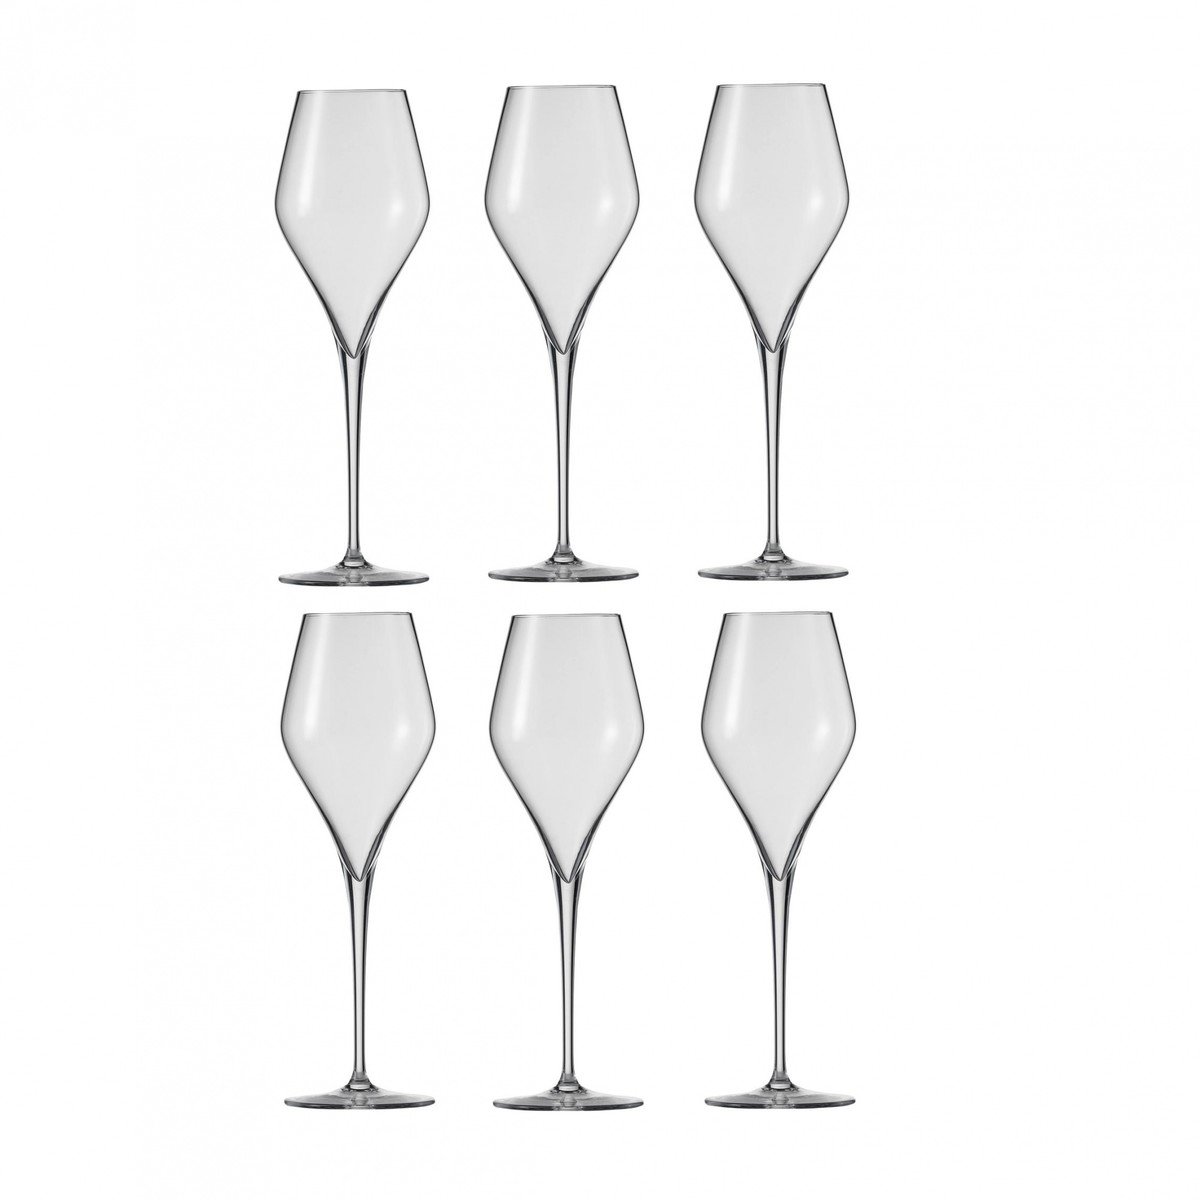 Riedel Wine Glasses Reviews | Forte Wine Glasses | Schott Zwiesel Wine Glasses